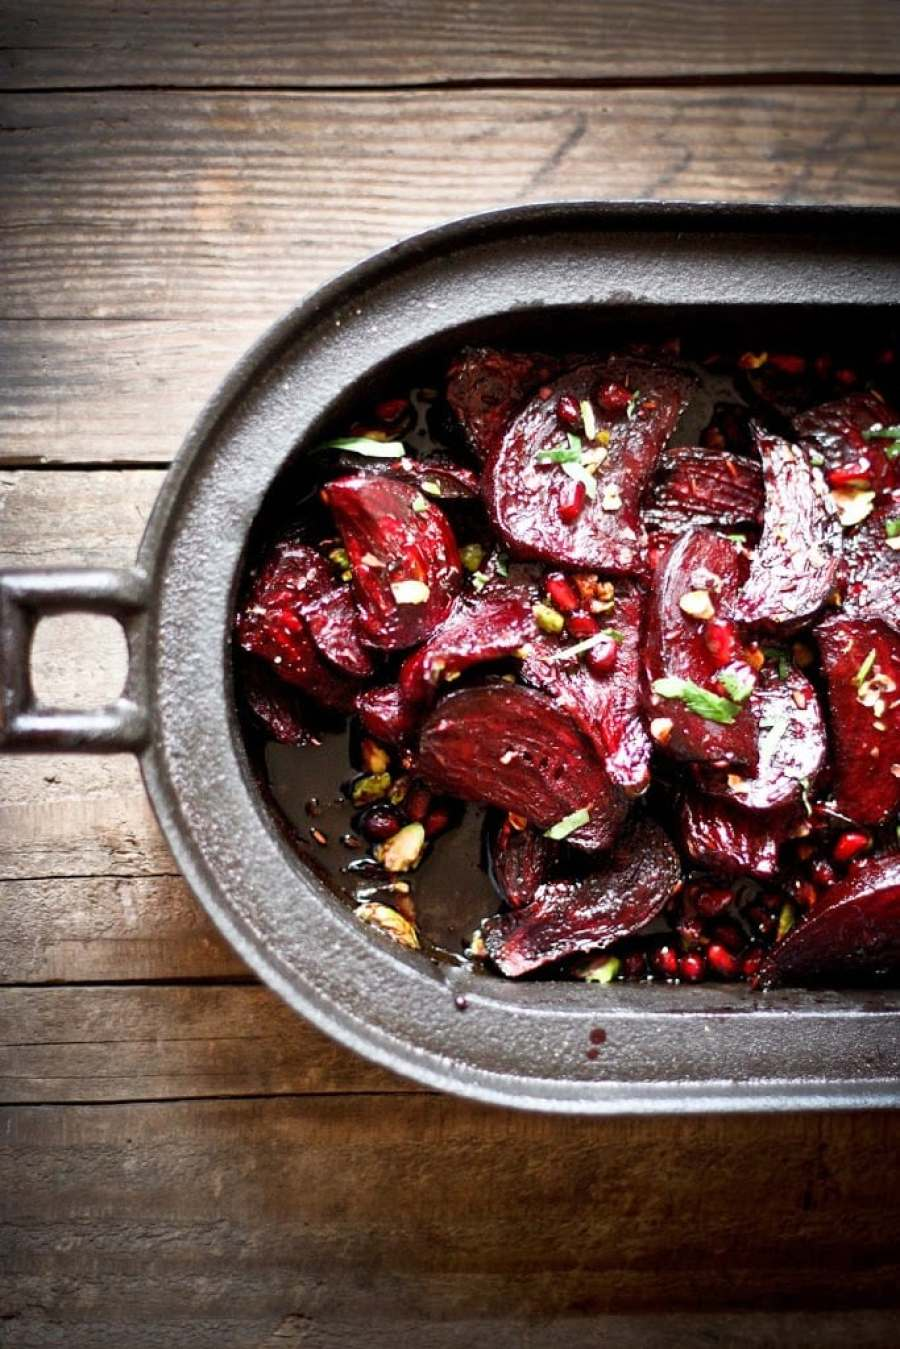 Moroccan Roasted Beets + 15 delicious Thanksgiving SIDE DISHES that will turn your dinner into a feast! | www.feastingathome.com